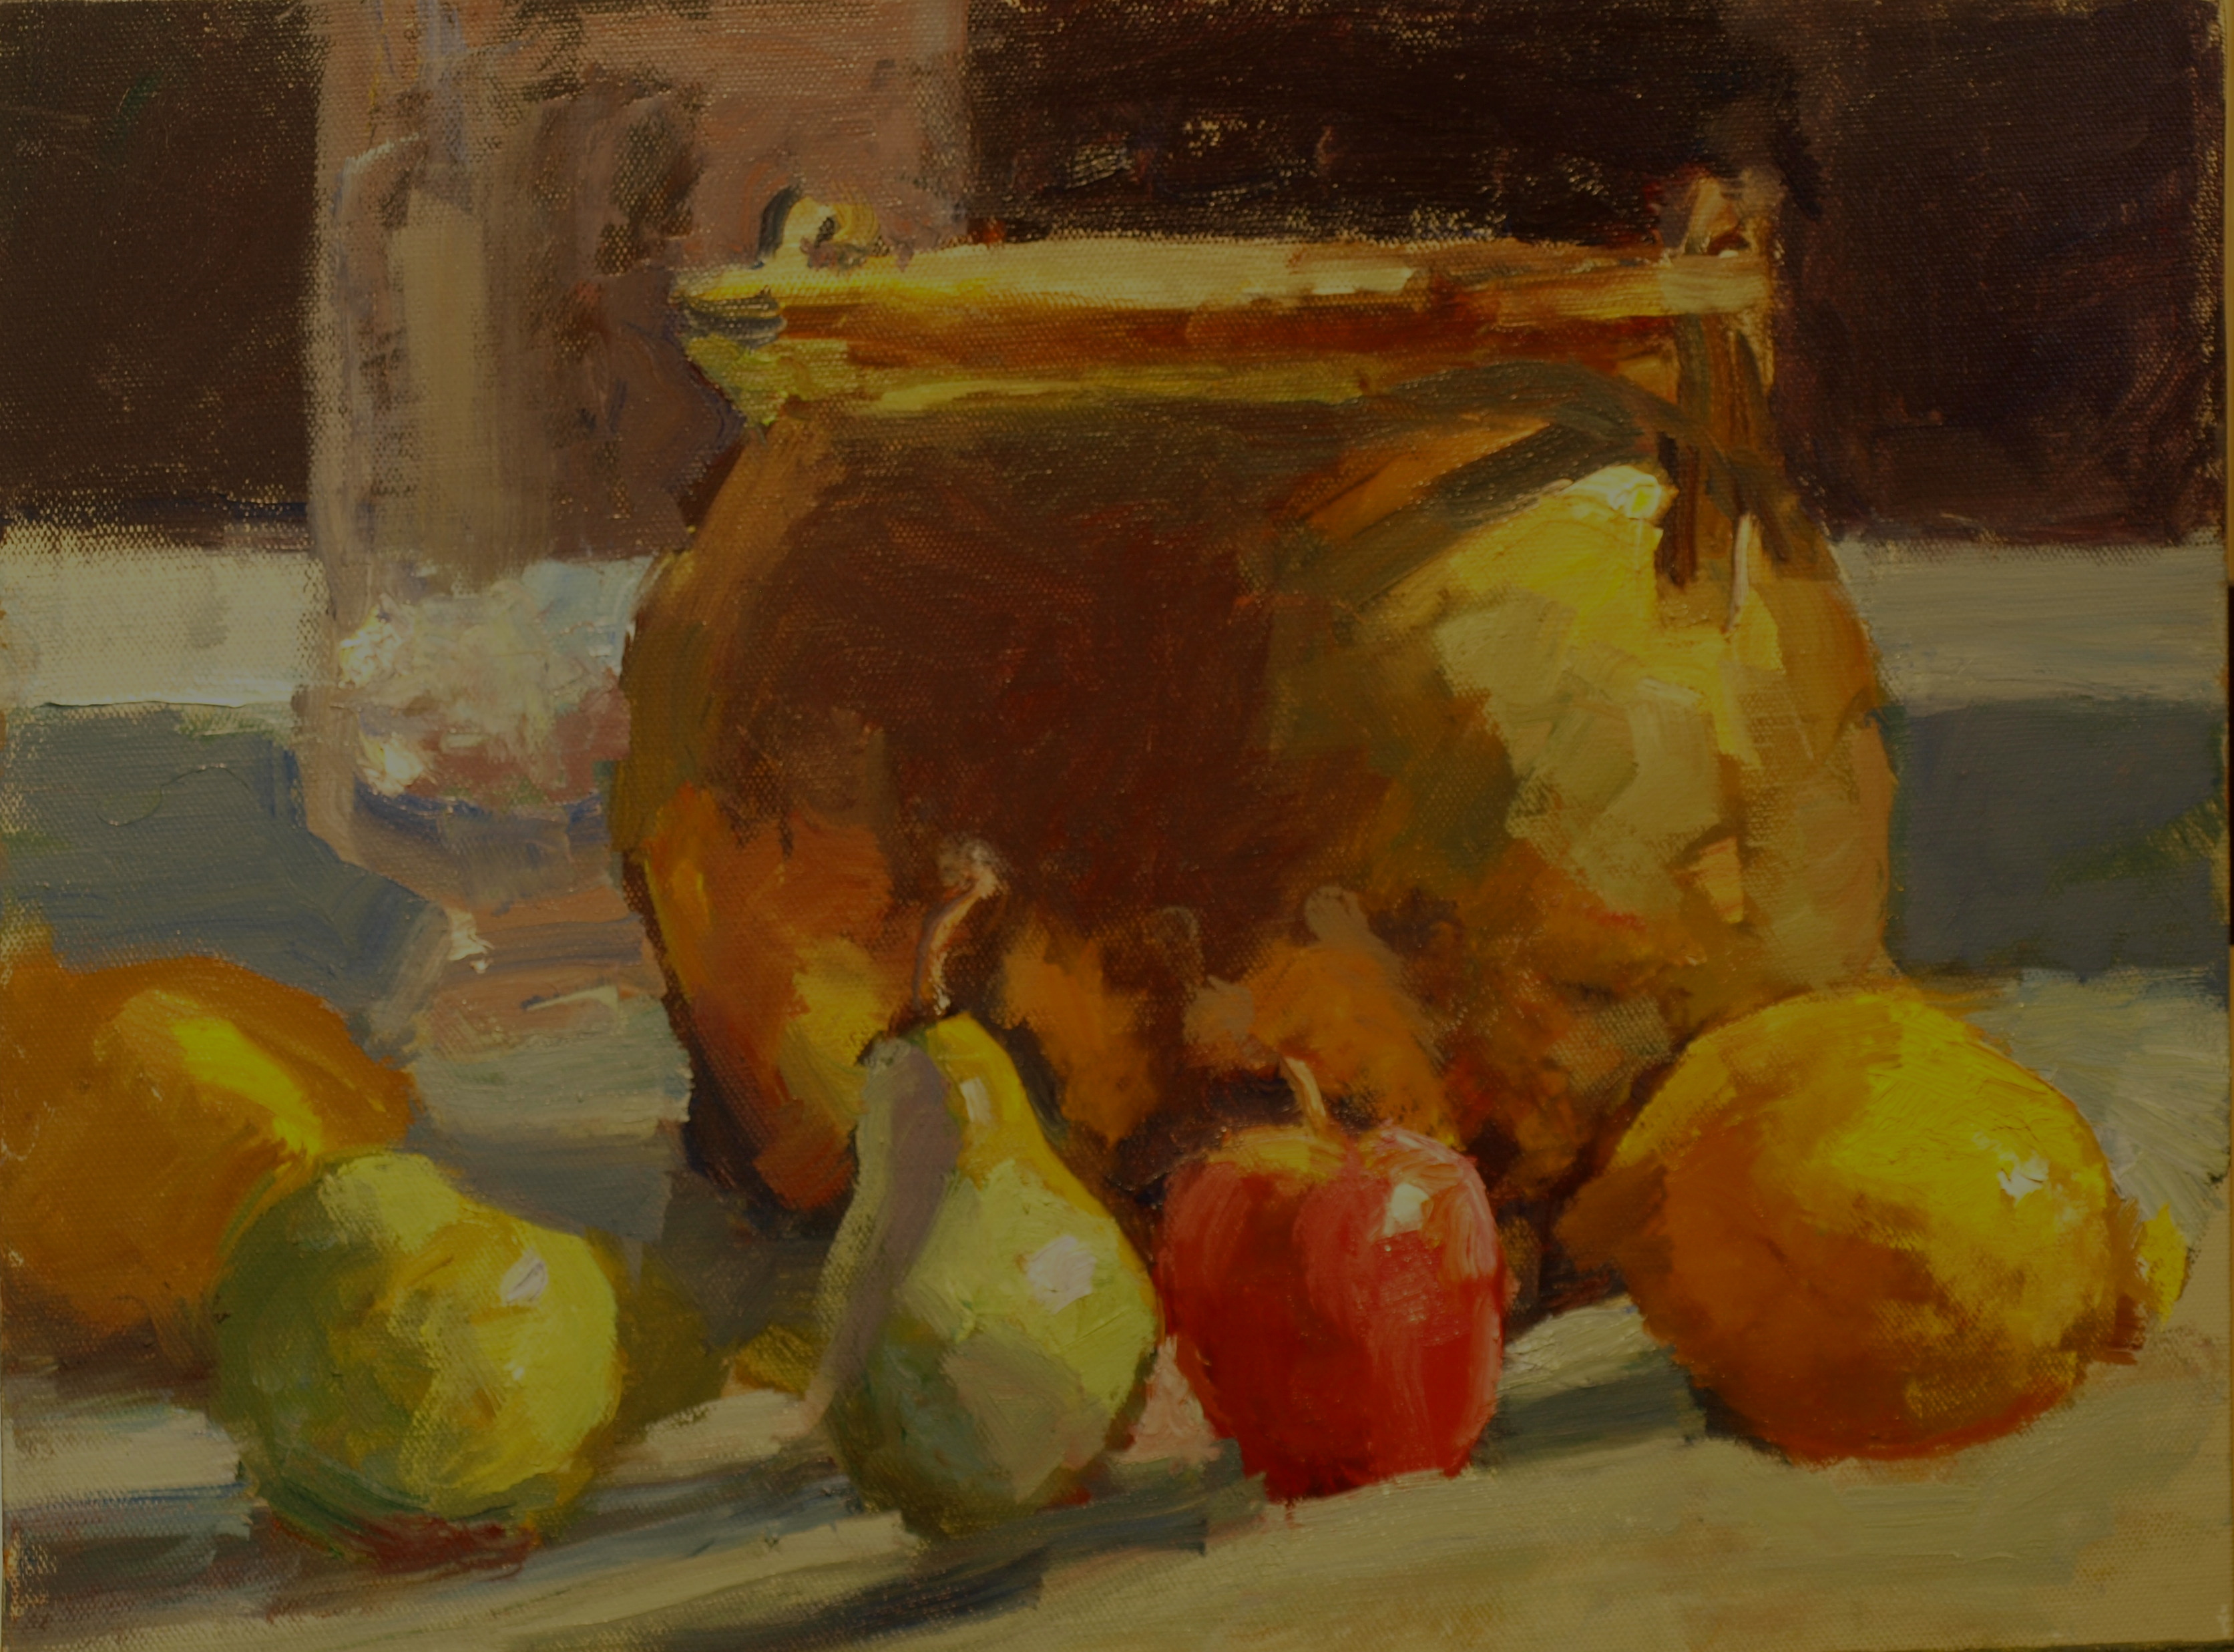 Glass and Brass, Oil on Panel, 12 x 16 Inches, by Susan Grisell, $275